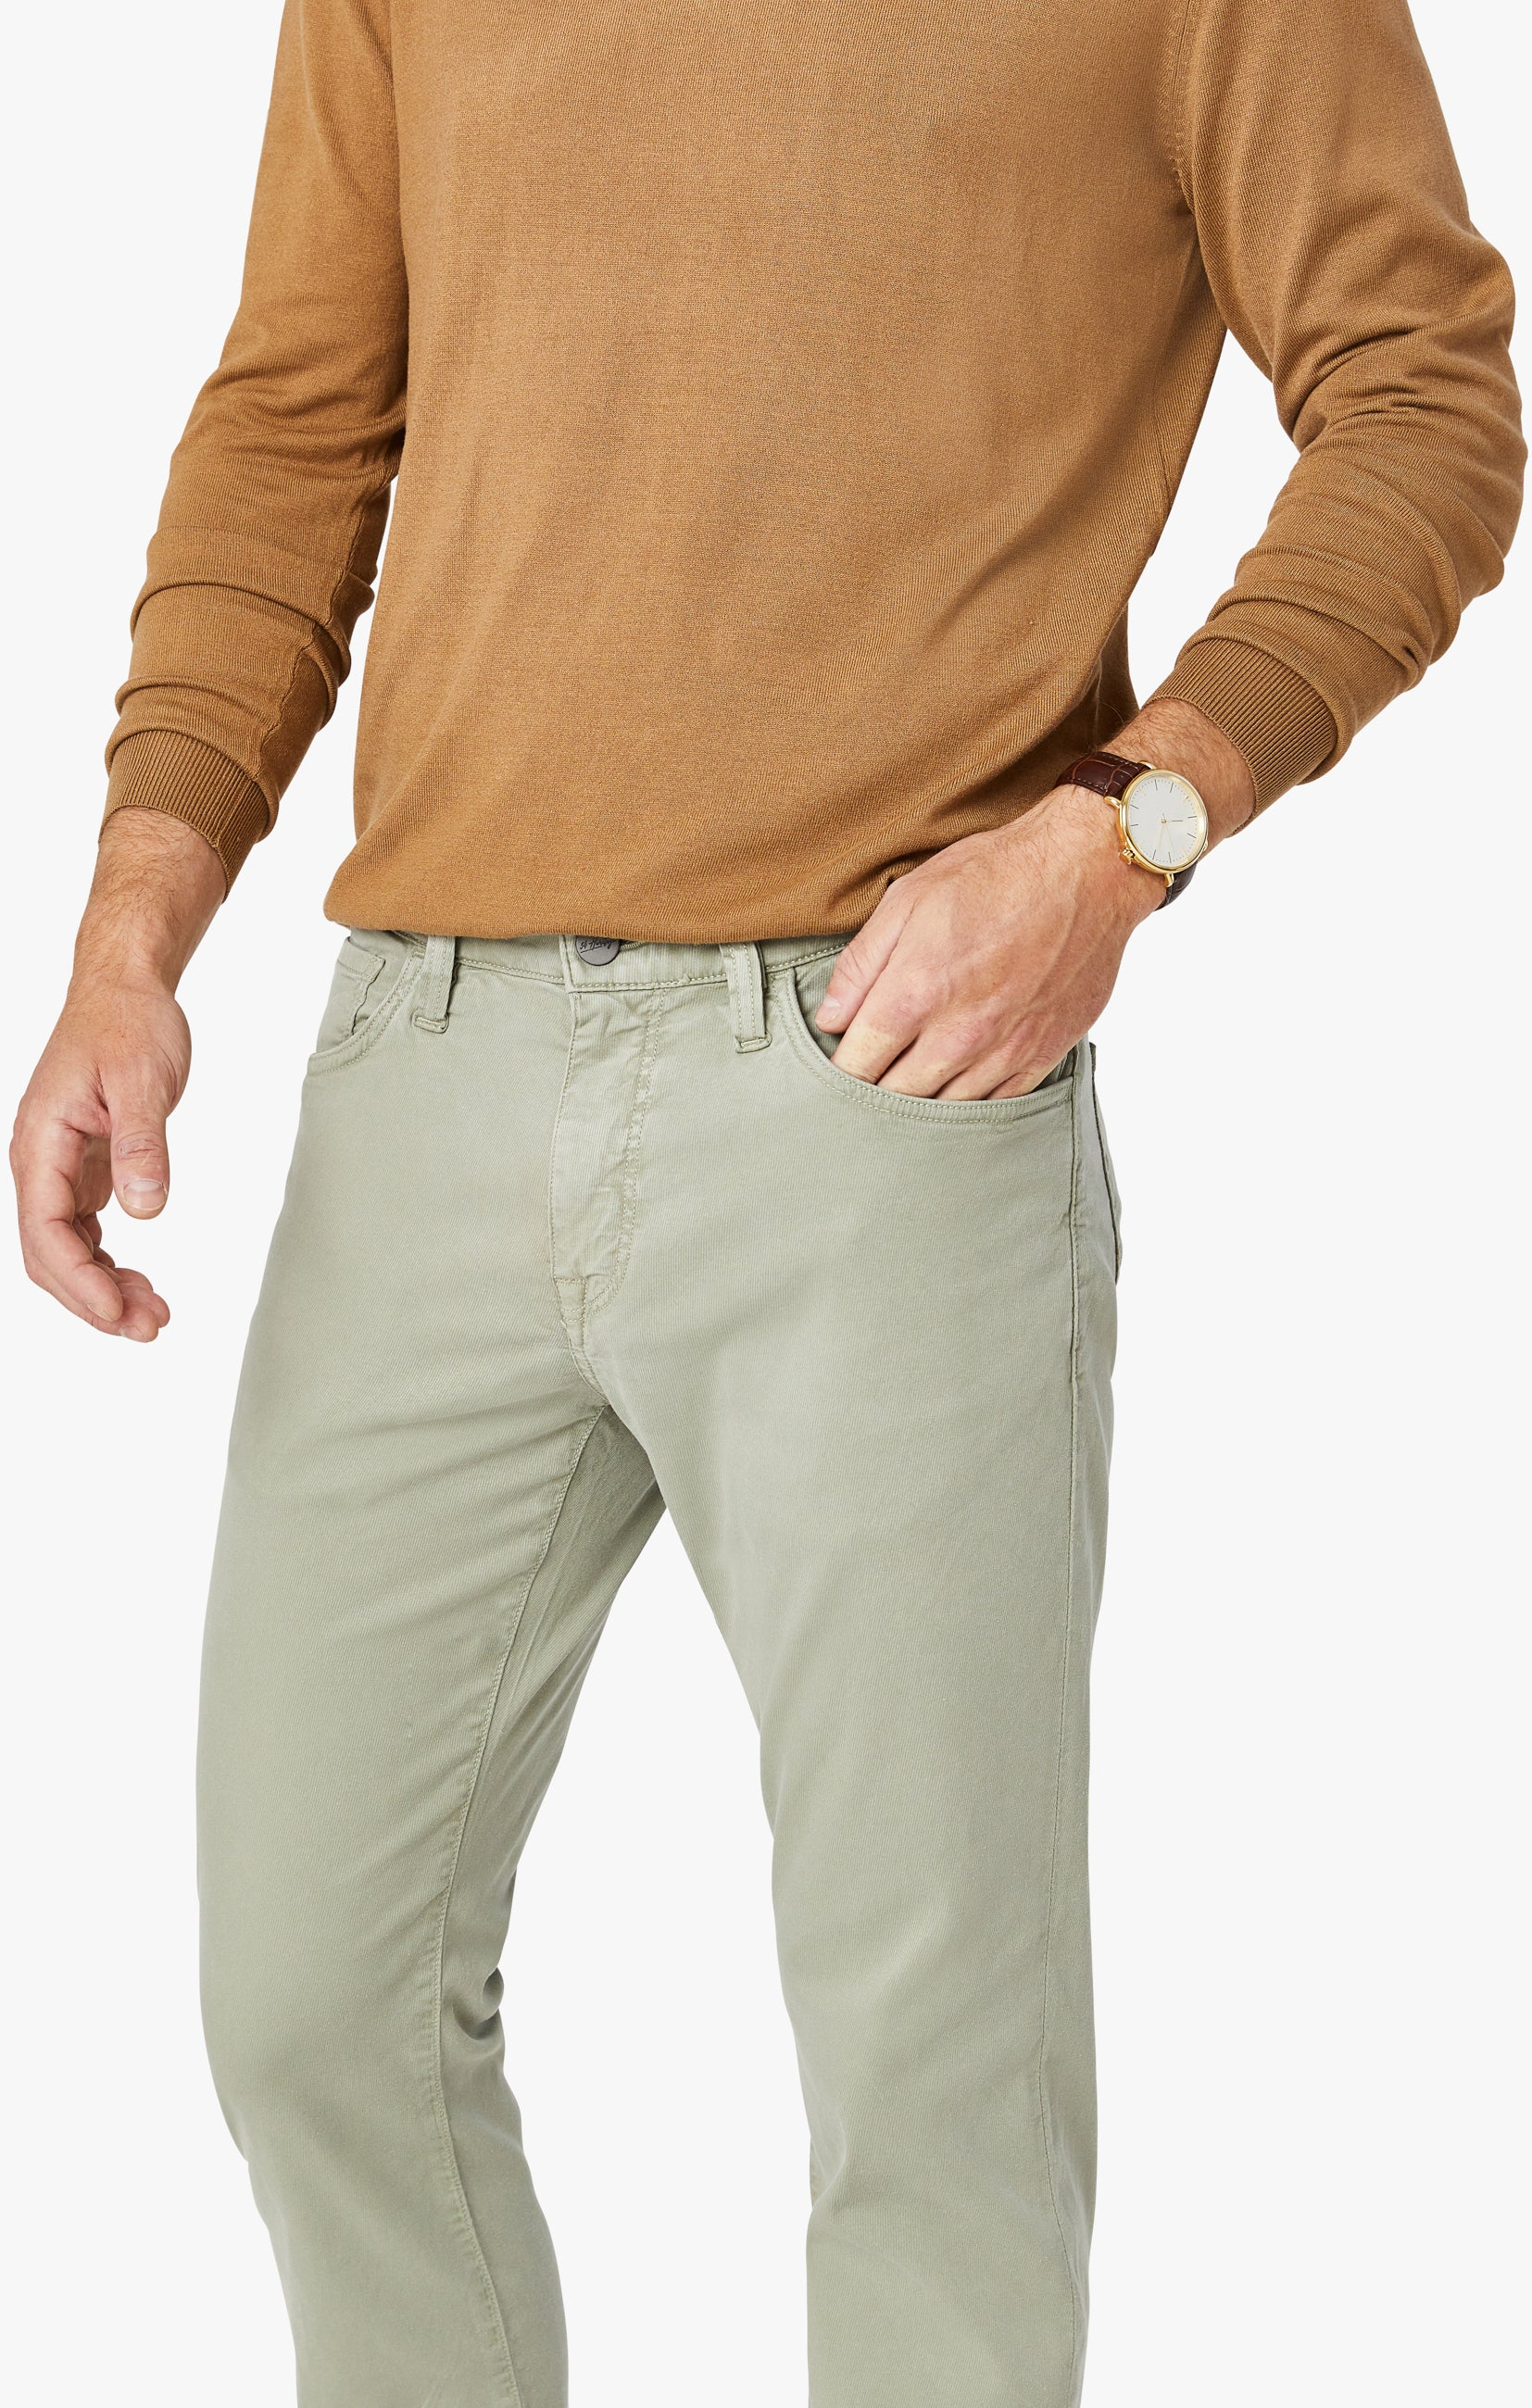 Courage Straight Leg Pants in Sage Soft Touch Image 8